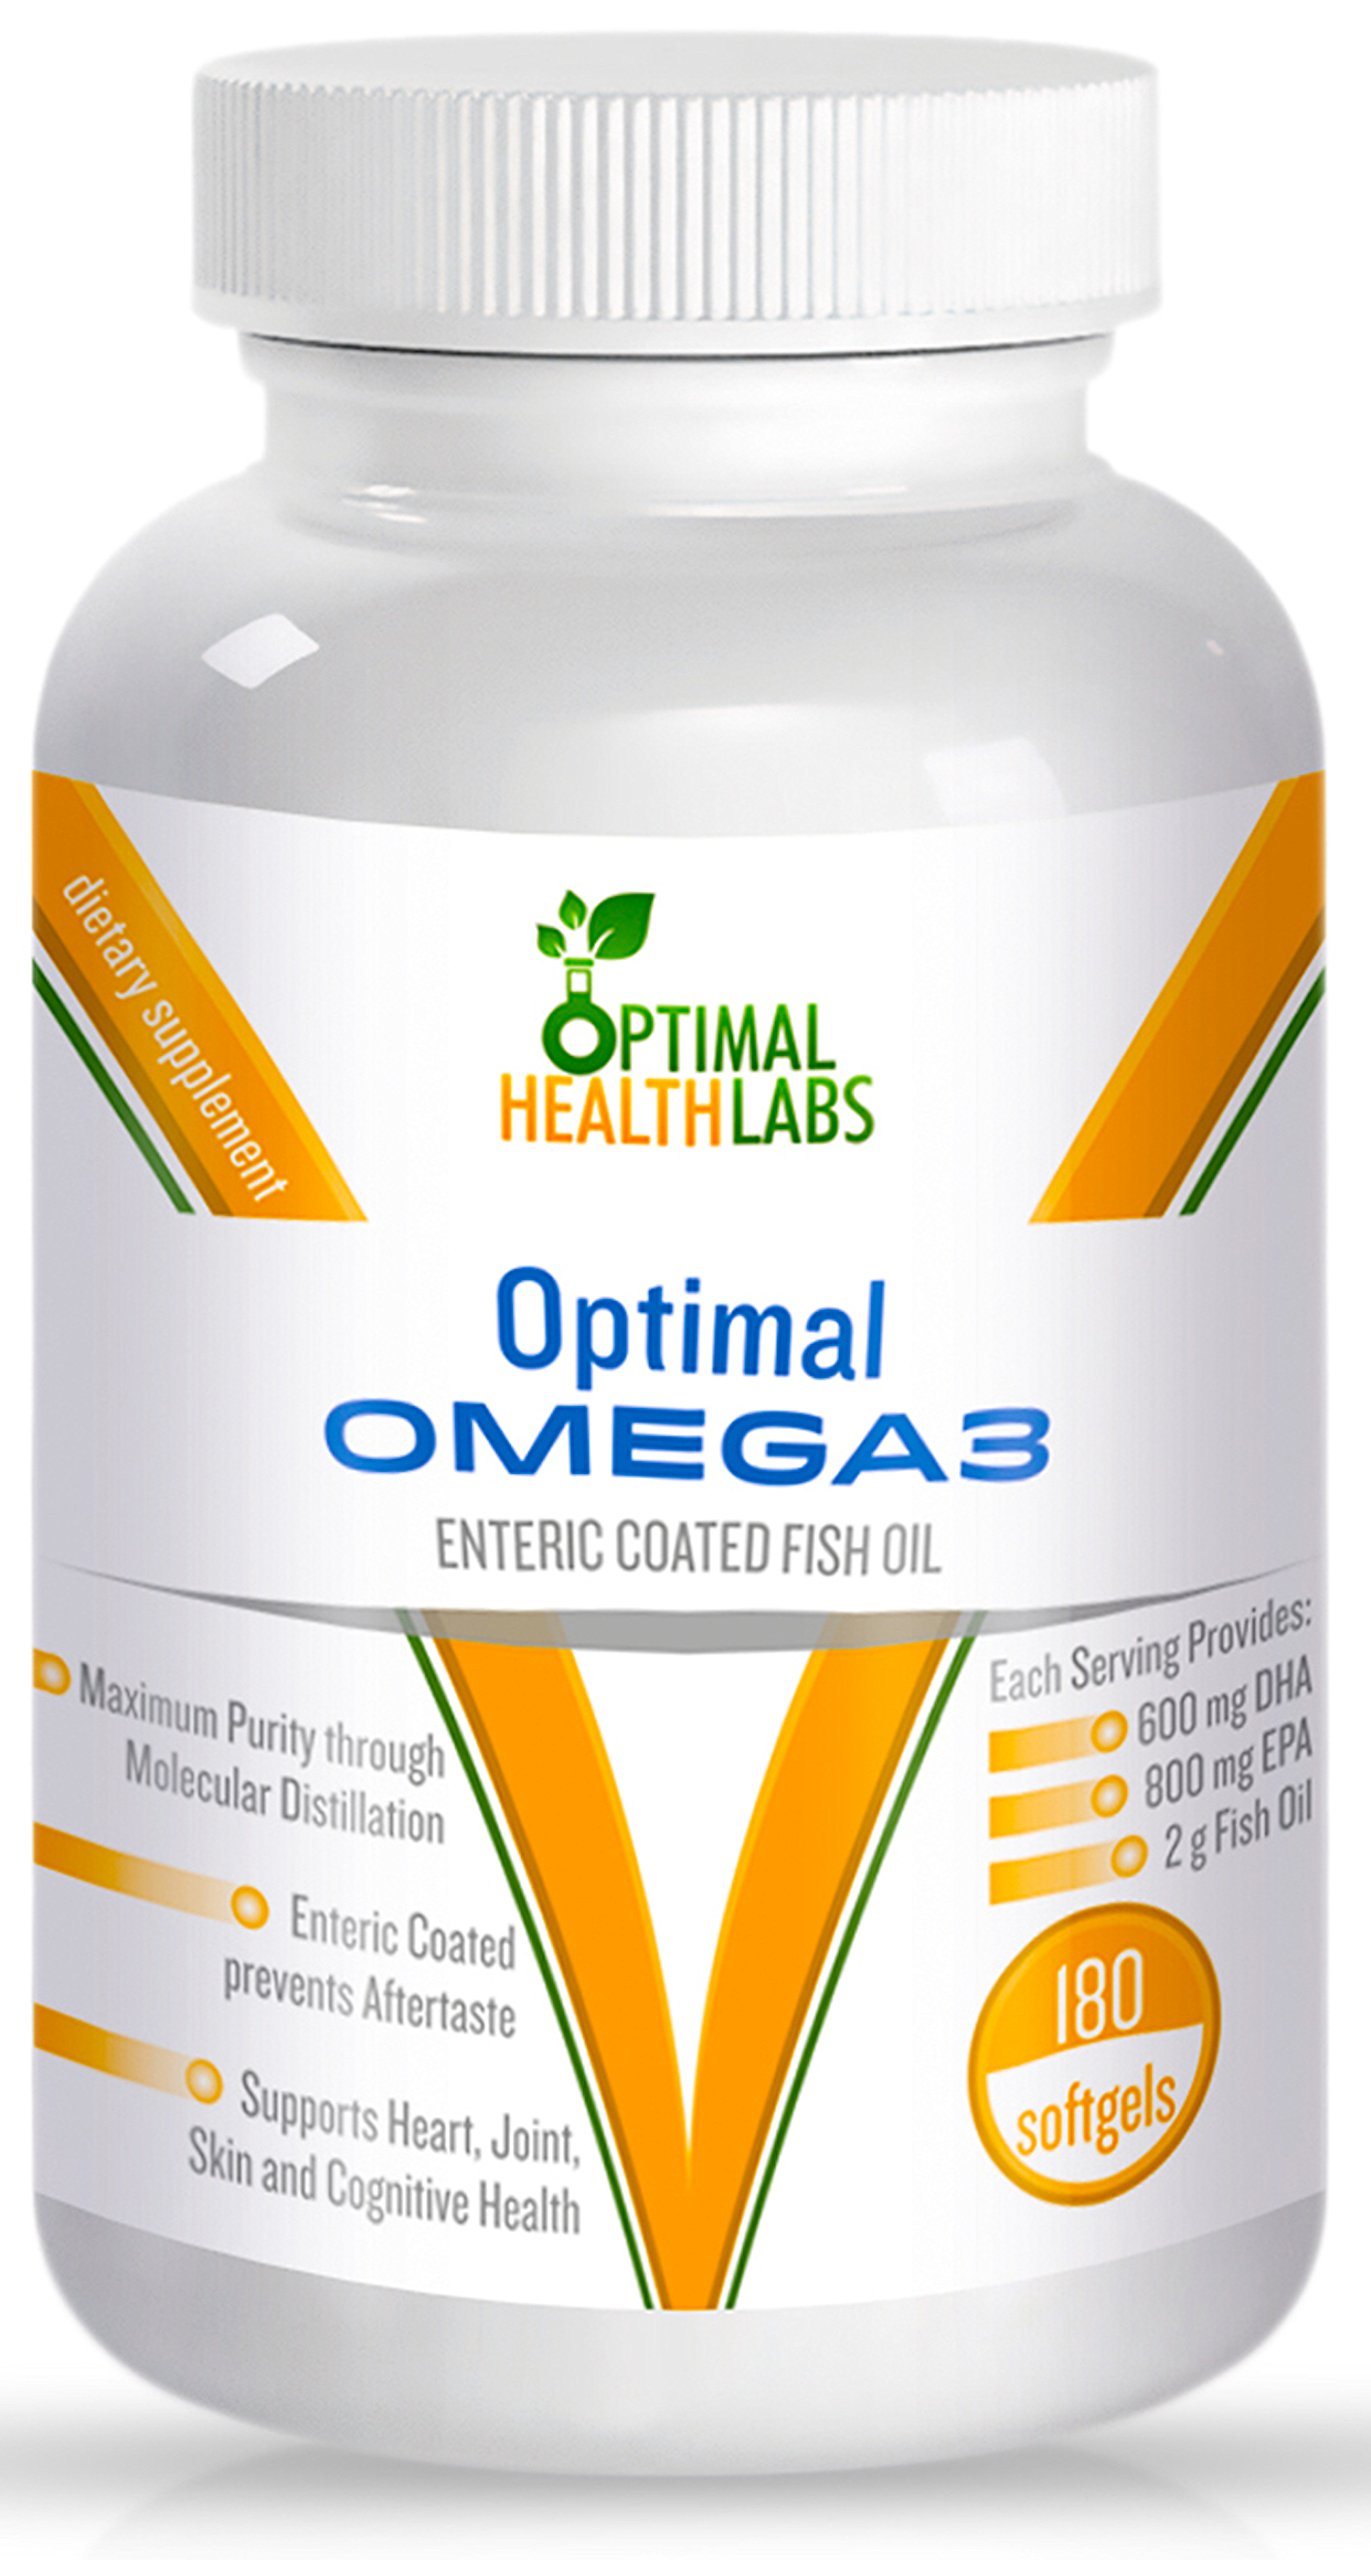 Omega 3 Fatty Acids Supplement - Burpless Perfectly Balanced 600mg DHA 800mg EPA - Maximum Absorption - Ideal Potency - No Toxins - All The Best Benefits, No Fishy Aftertaste